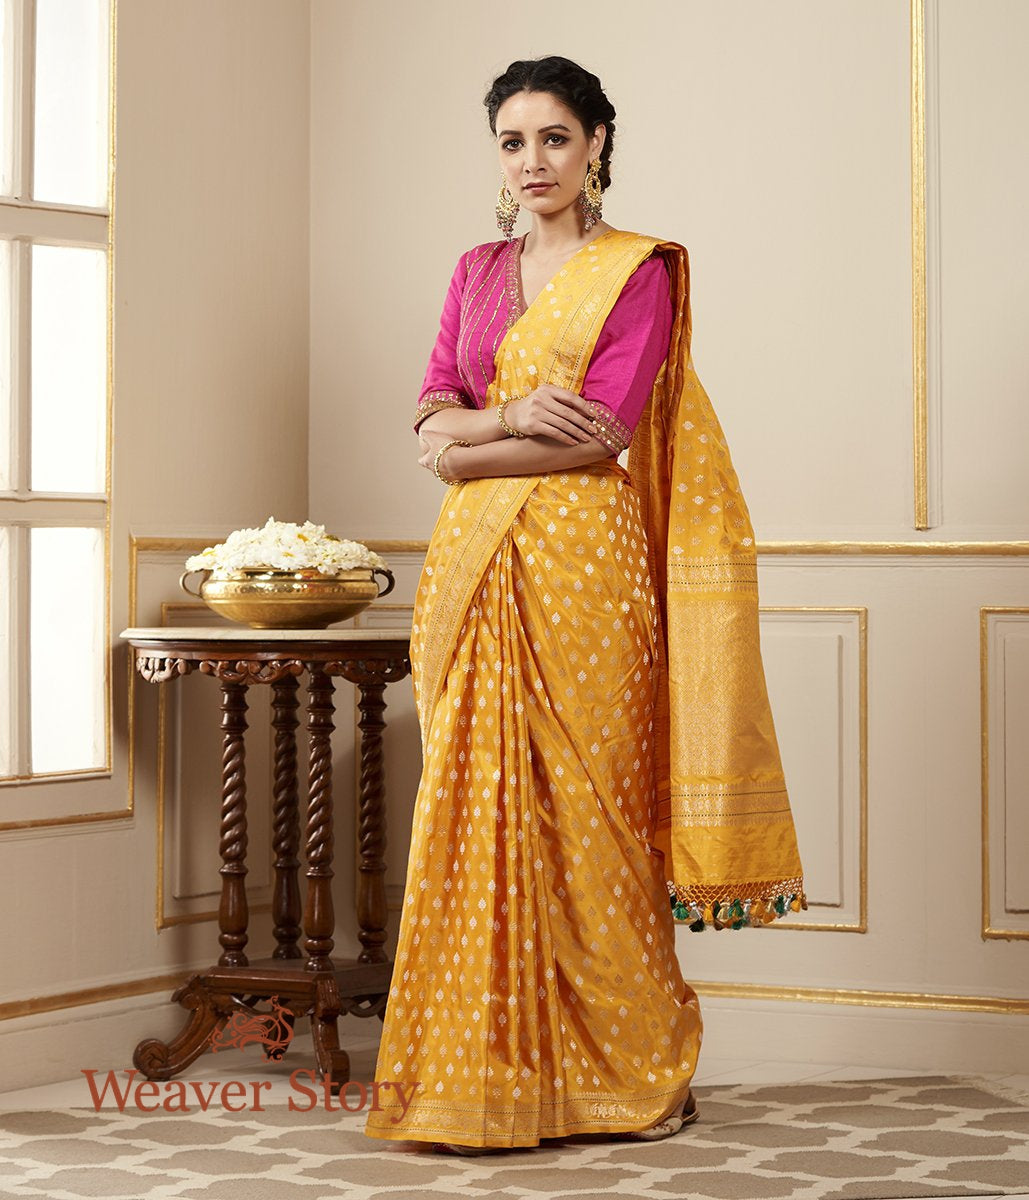 Handwoven Yellow Banarasi Saree with Kadhwa Booti Woven in Sona Rupa Zari